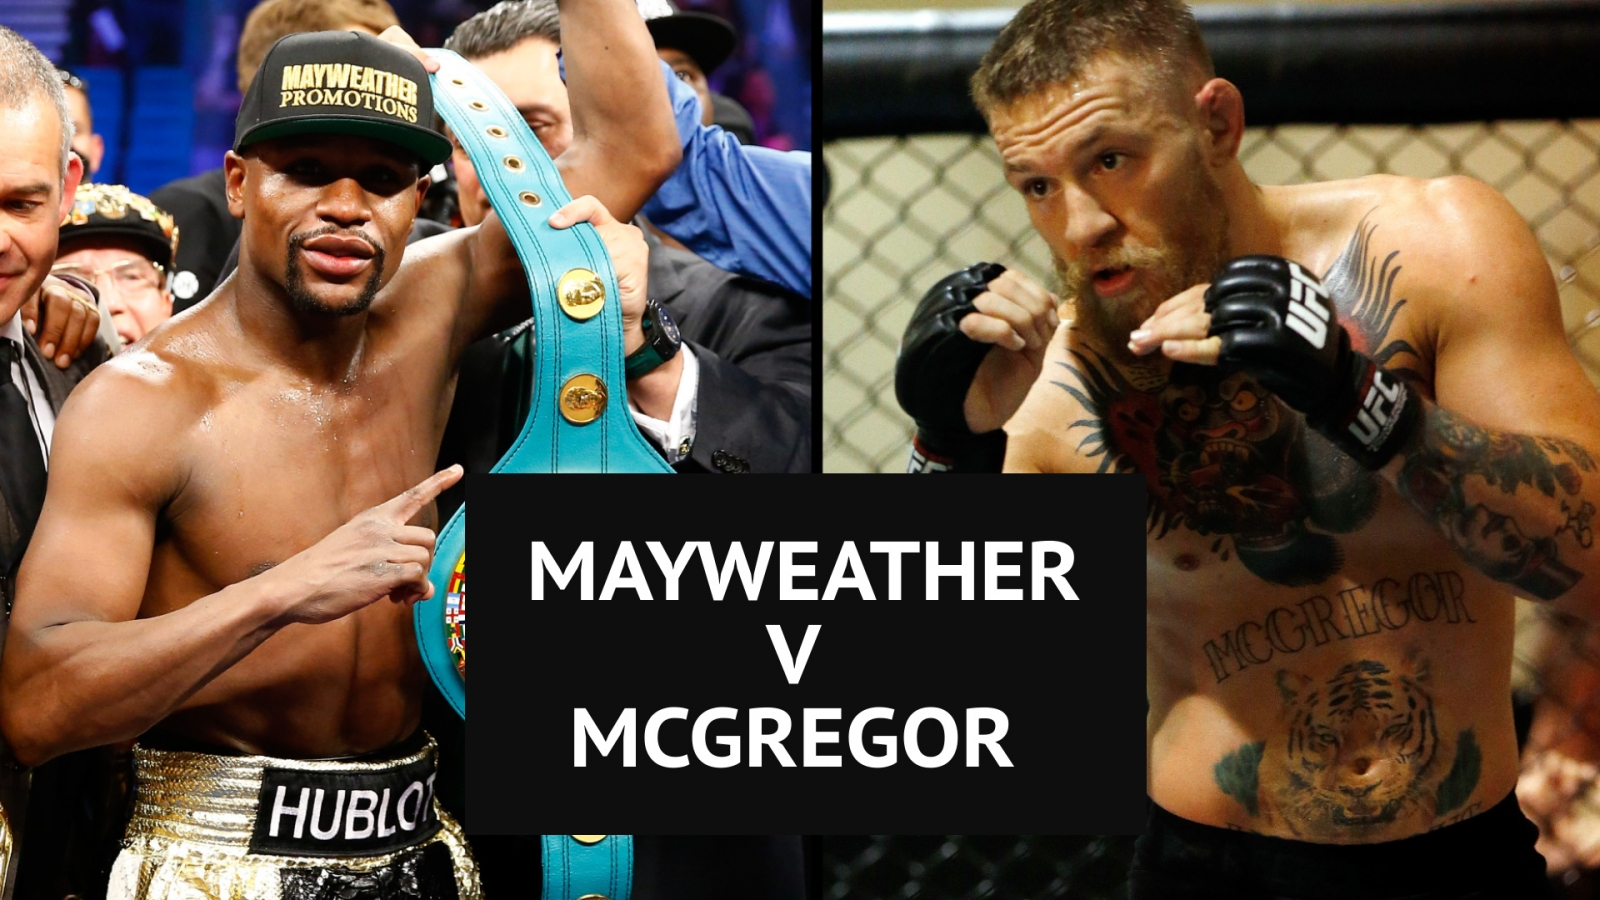 https://d.ibtimes.co.uk/en/full/1619545/floyd-mayweather-v-conor-mcgregor-fight-confirmed-august-26.jpg?w=640&h=360&l=50&t=40&q=80